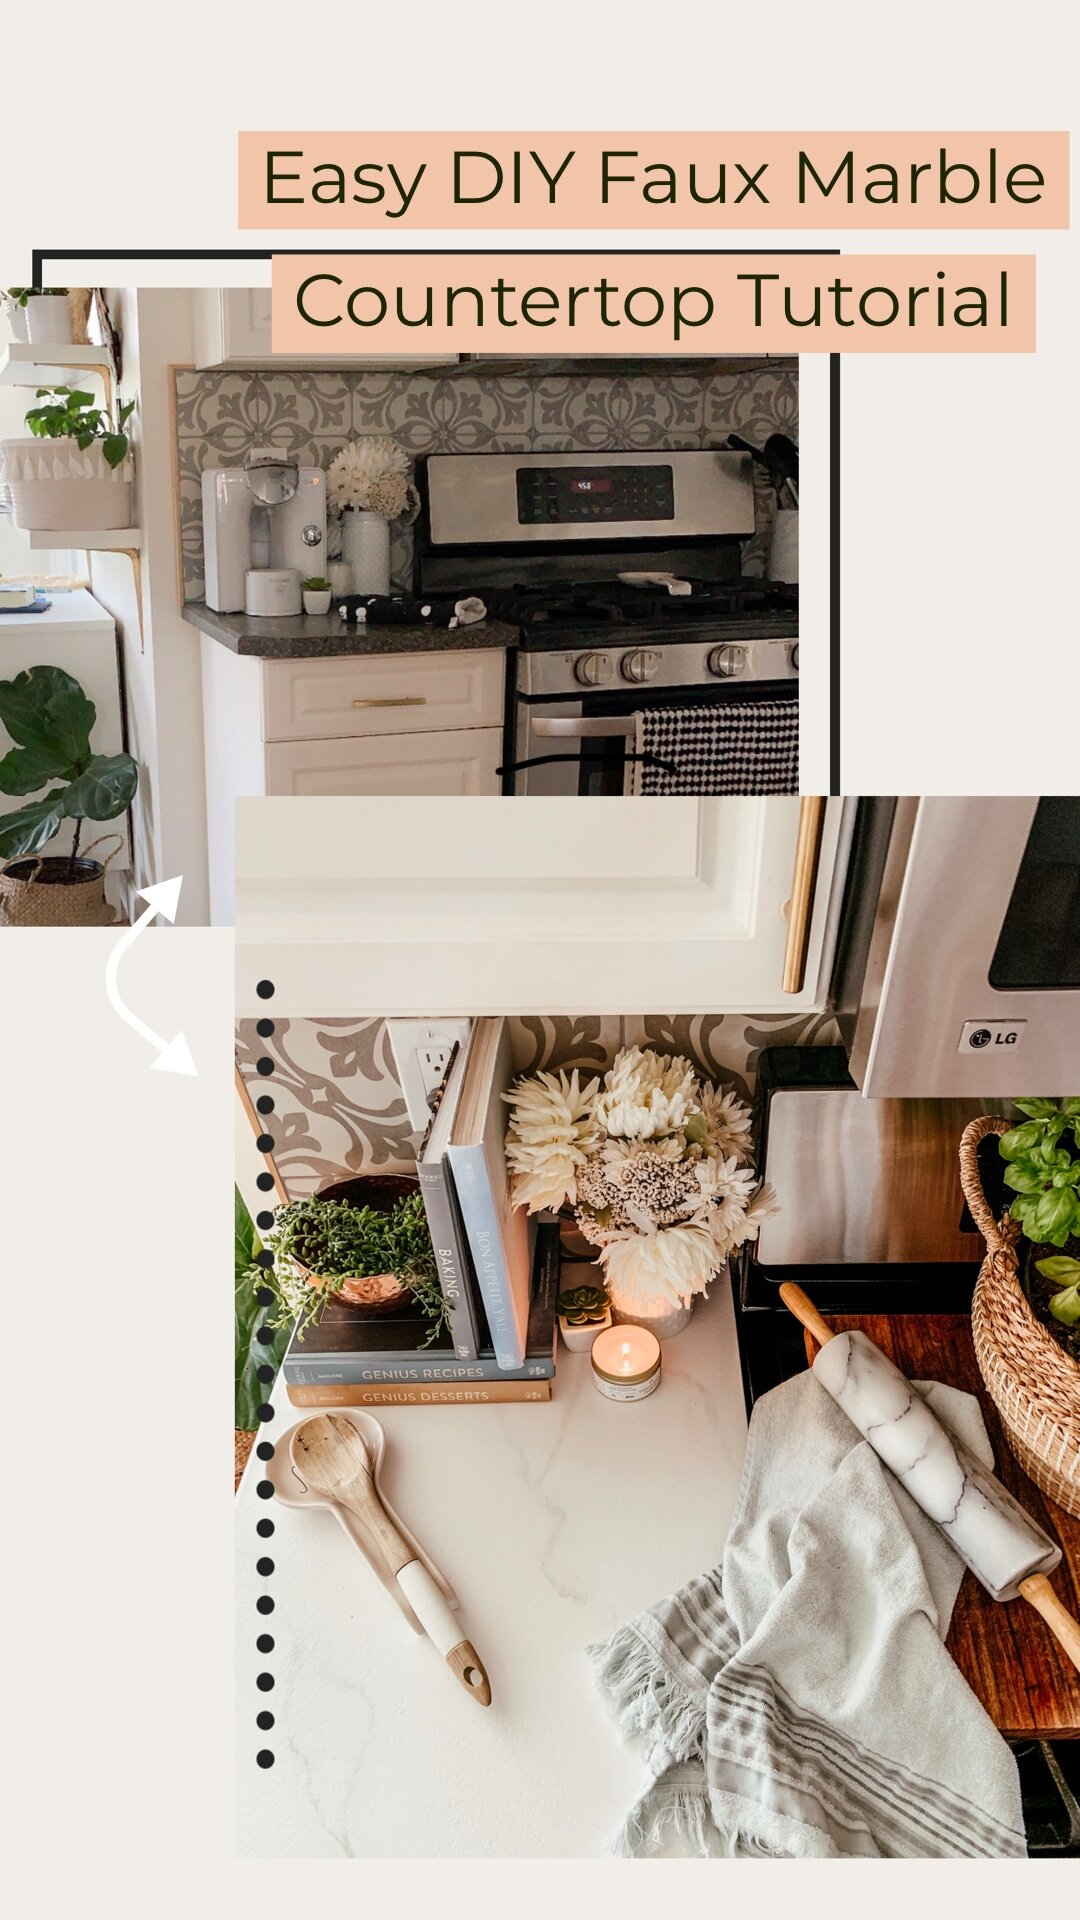 Fauxhow To Diy A Faux Painted Marble Countertop Painted Kitchen Countertop S That Look Like Marble The Beauty Revival